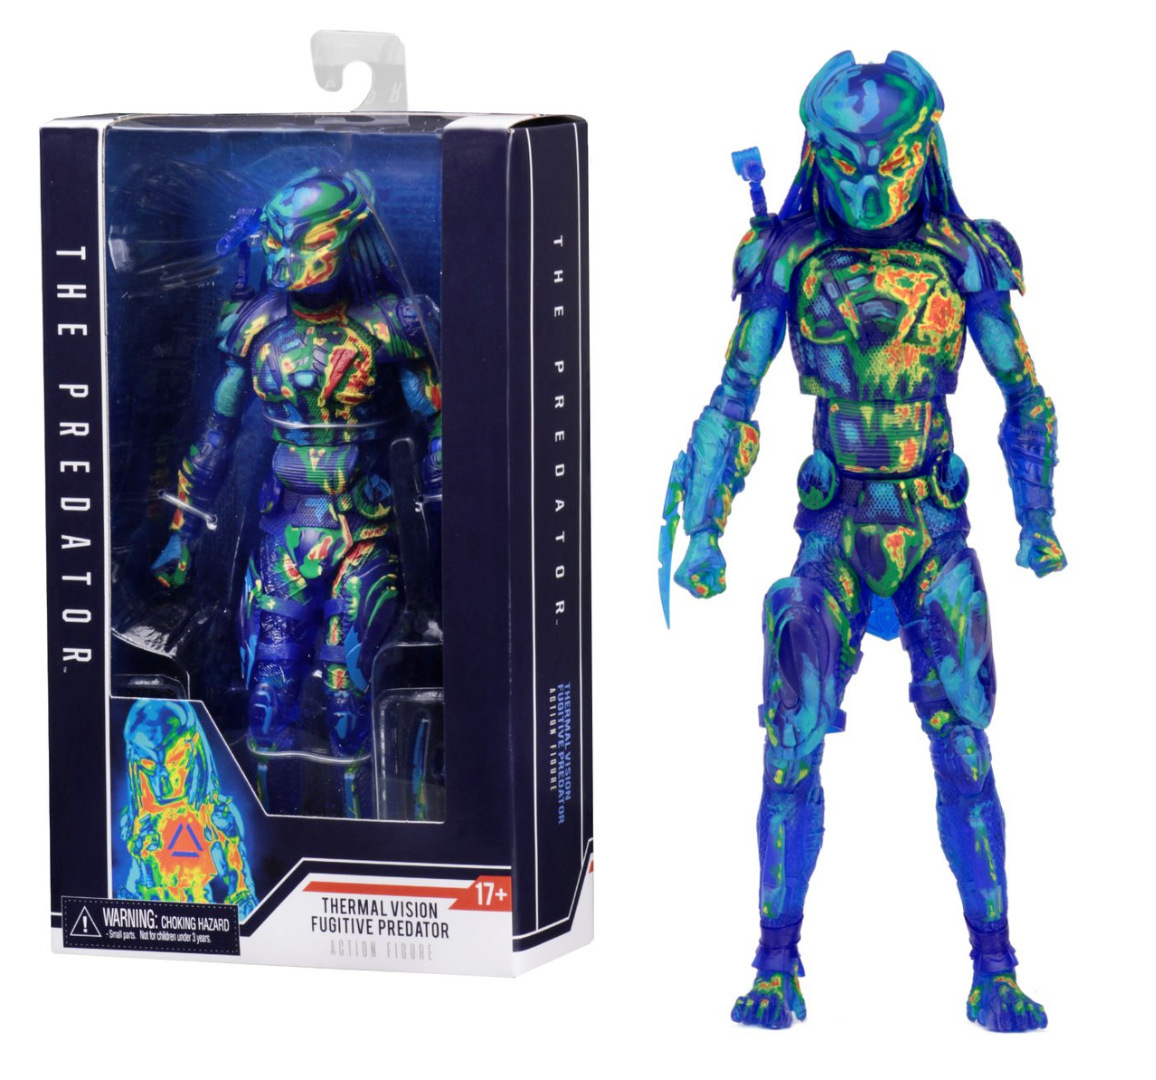 NECA The Predator Action Figures 2018 New Thermal Vision BJD Toys 18cmNECA The Predator Action Figures 2018 New Thermal Vision BJD Toys 18cm